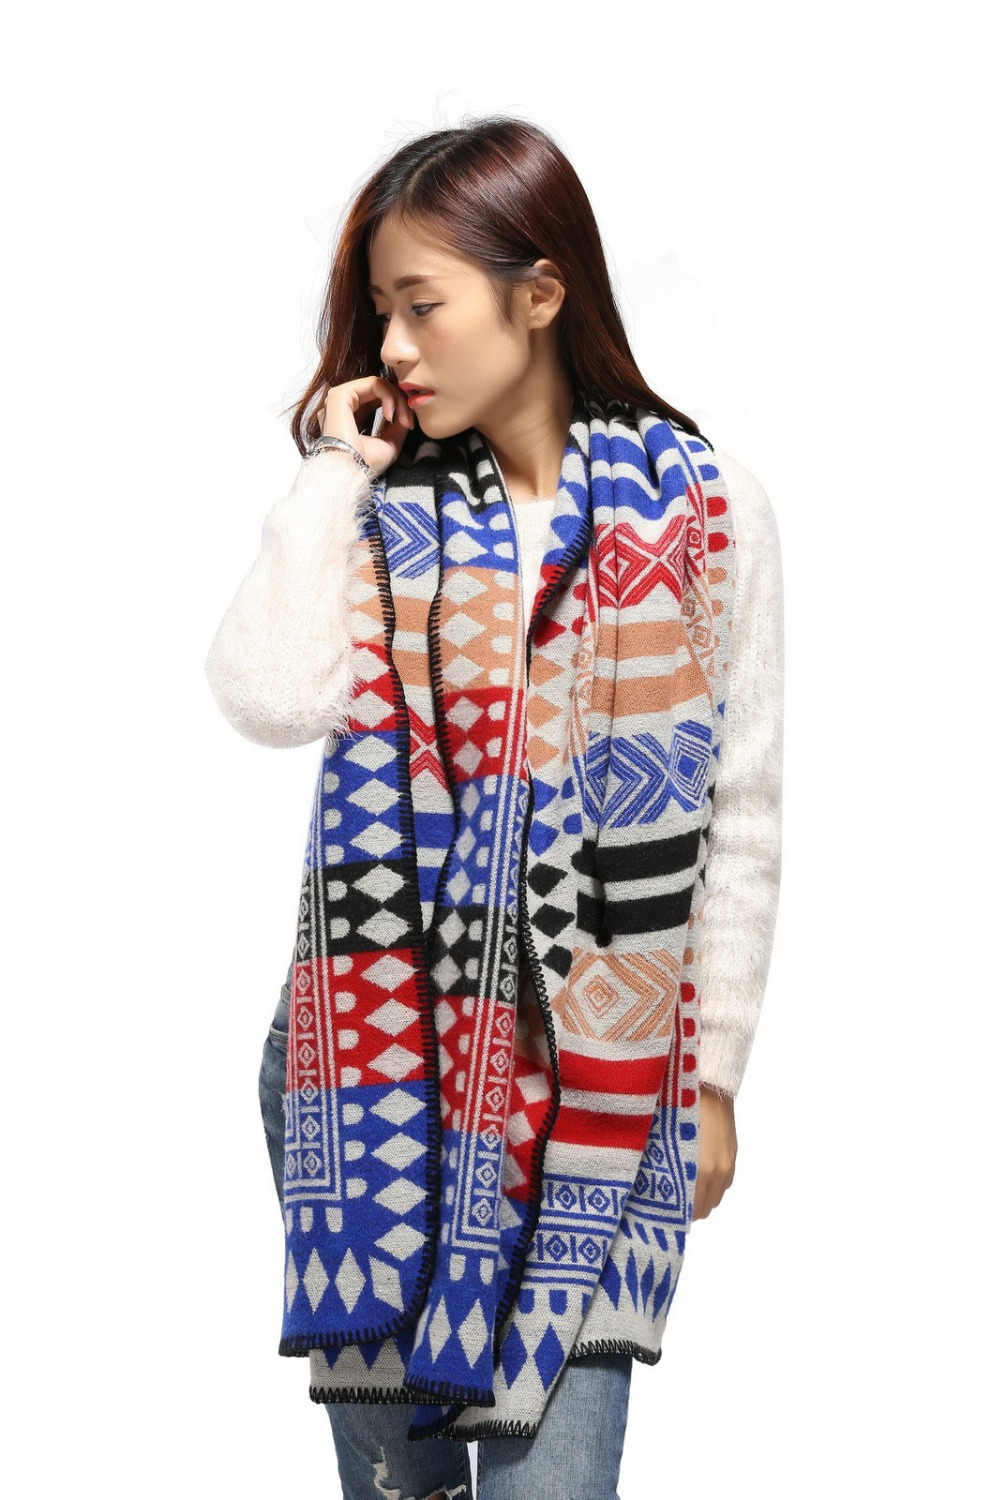 high quality adult Acryilc ladies scarves 2015 winter Geometric Poncho blanket fashion wither designer scarf shawl women #125